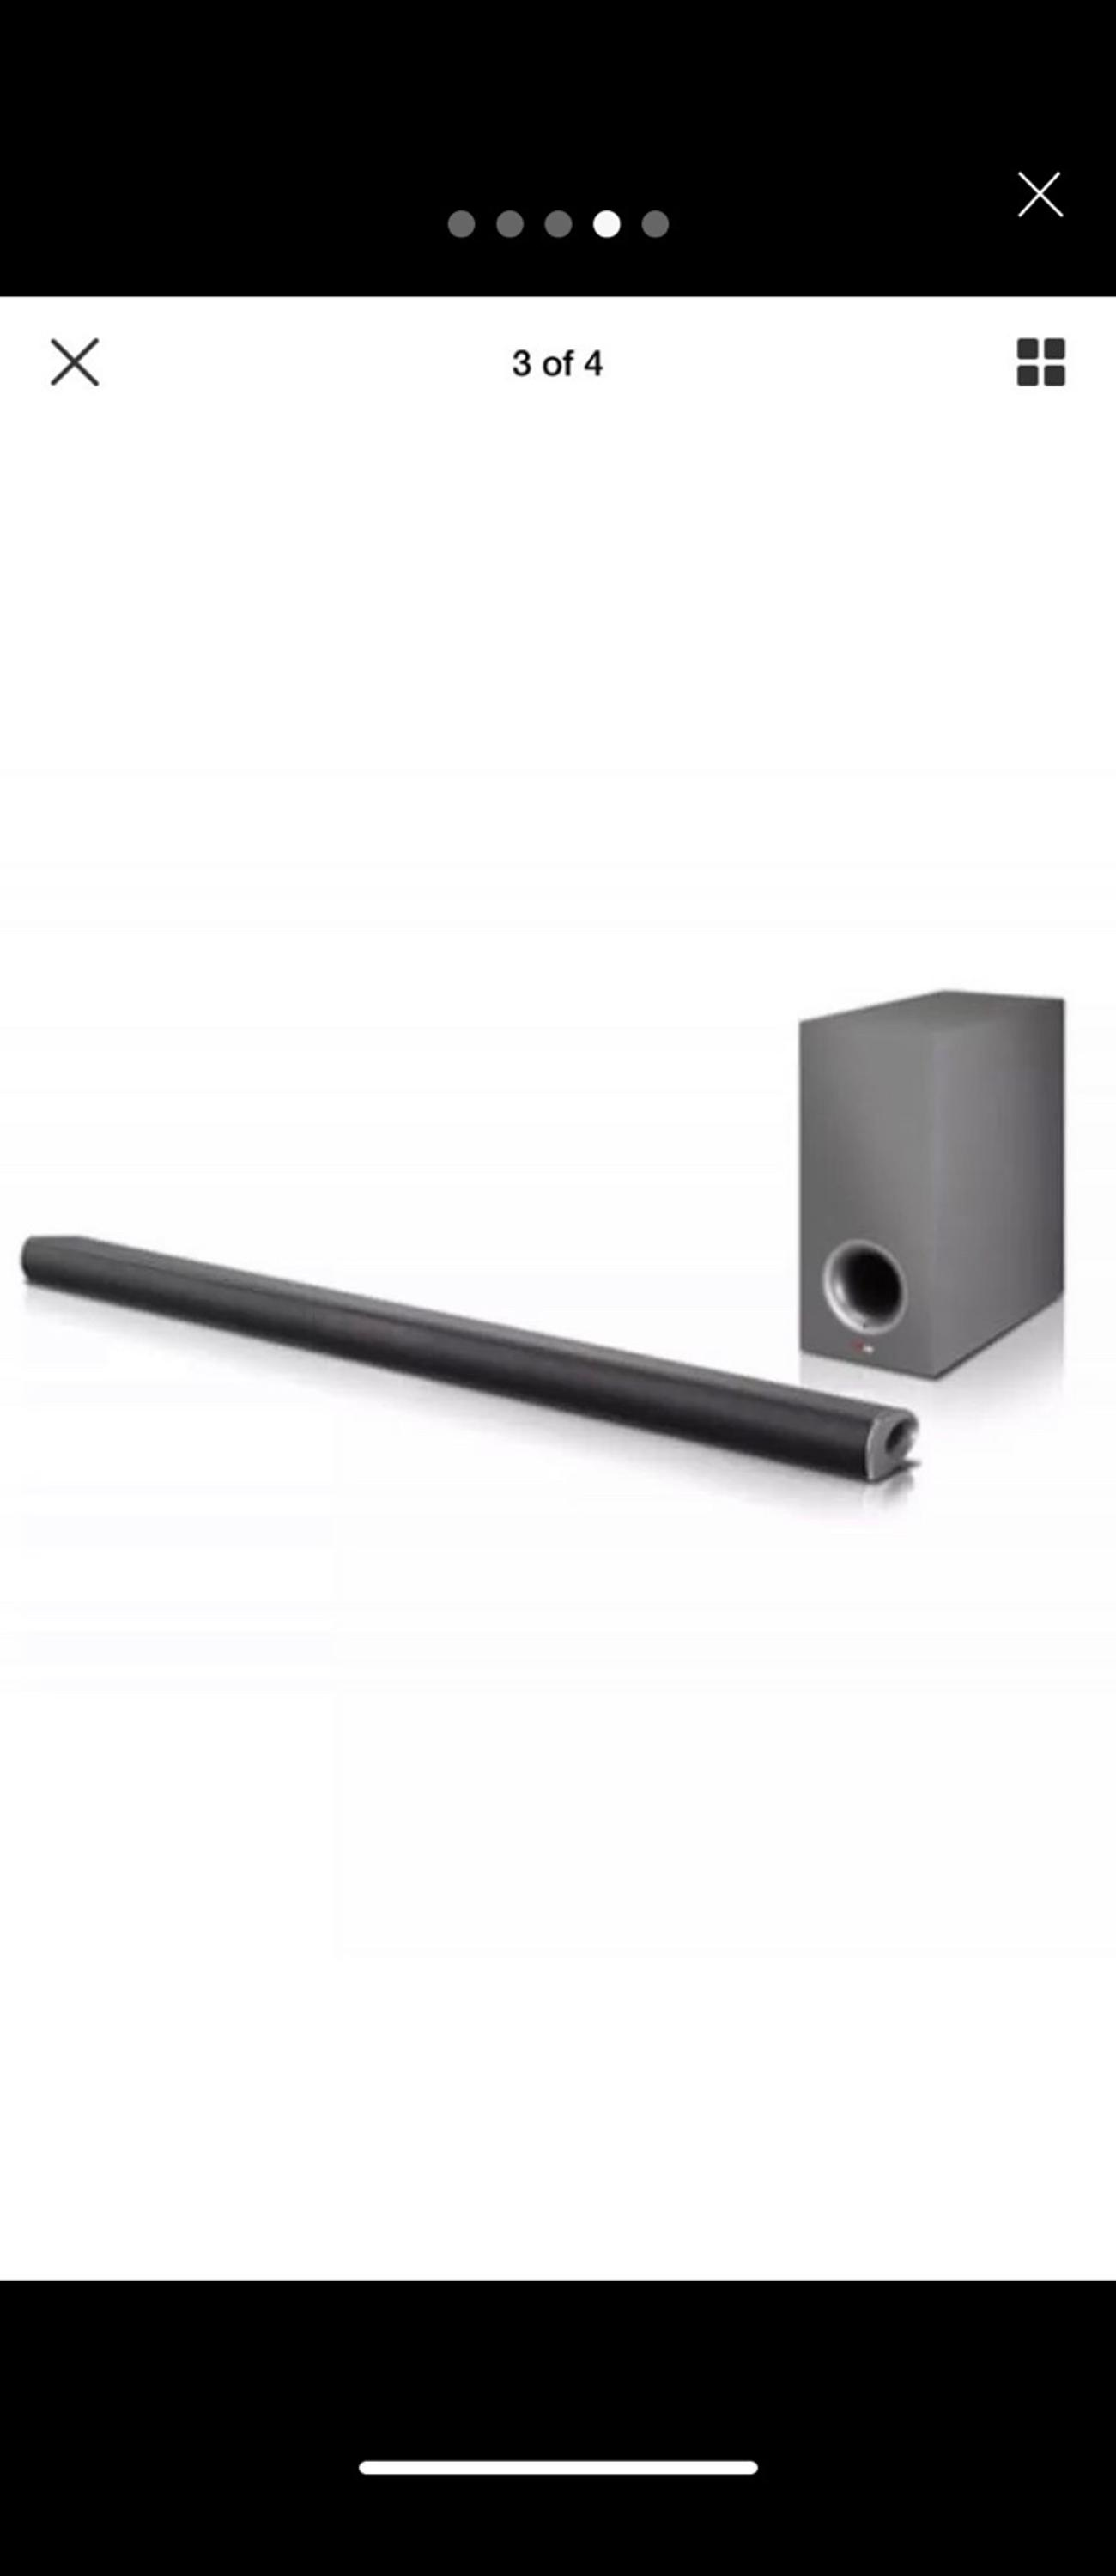 LG sound bar NB3540 with wireless subwoofer in TW4 London for £50 00